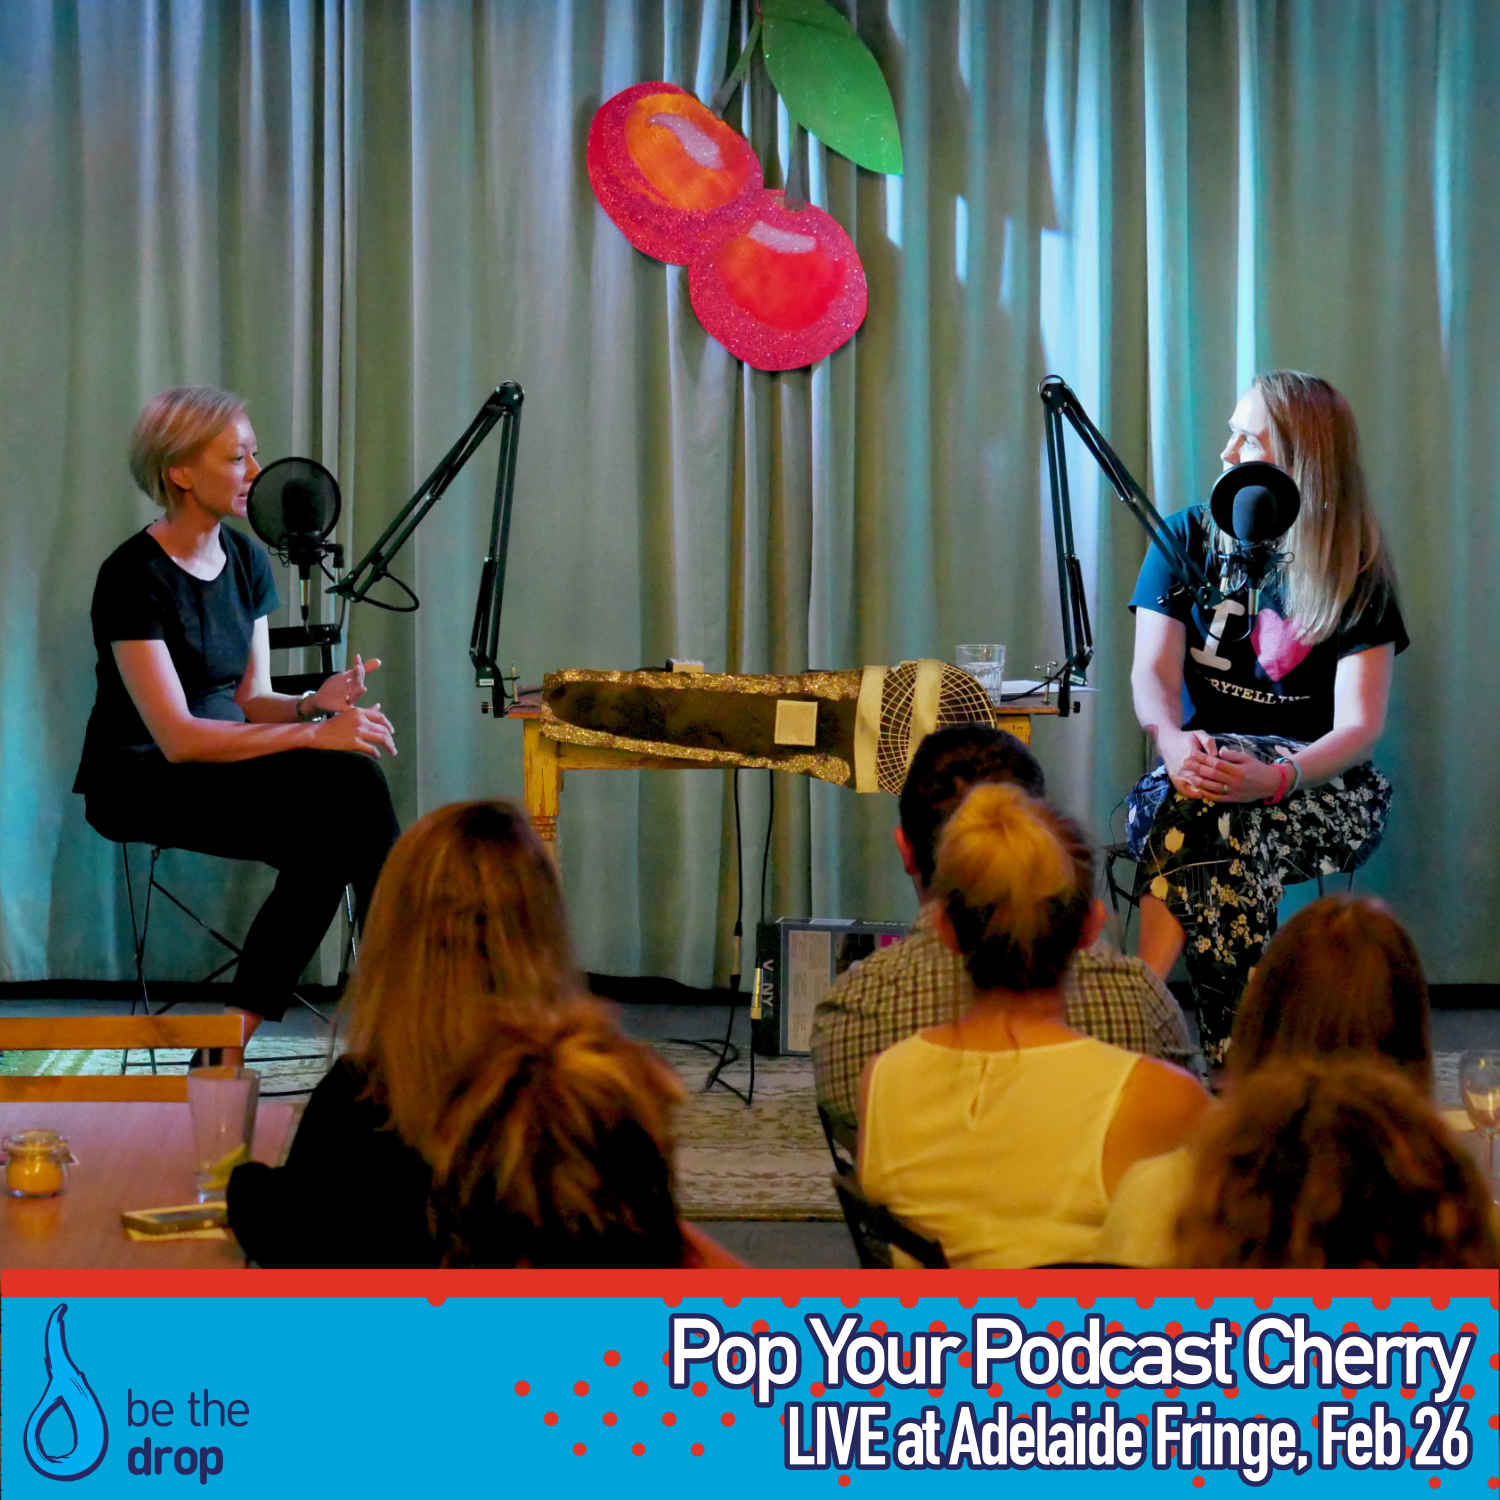 Interactive Podcast Event – LIVE at Adelaide Fringe [Podcast]